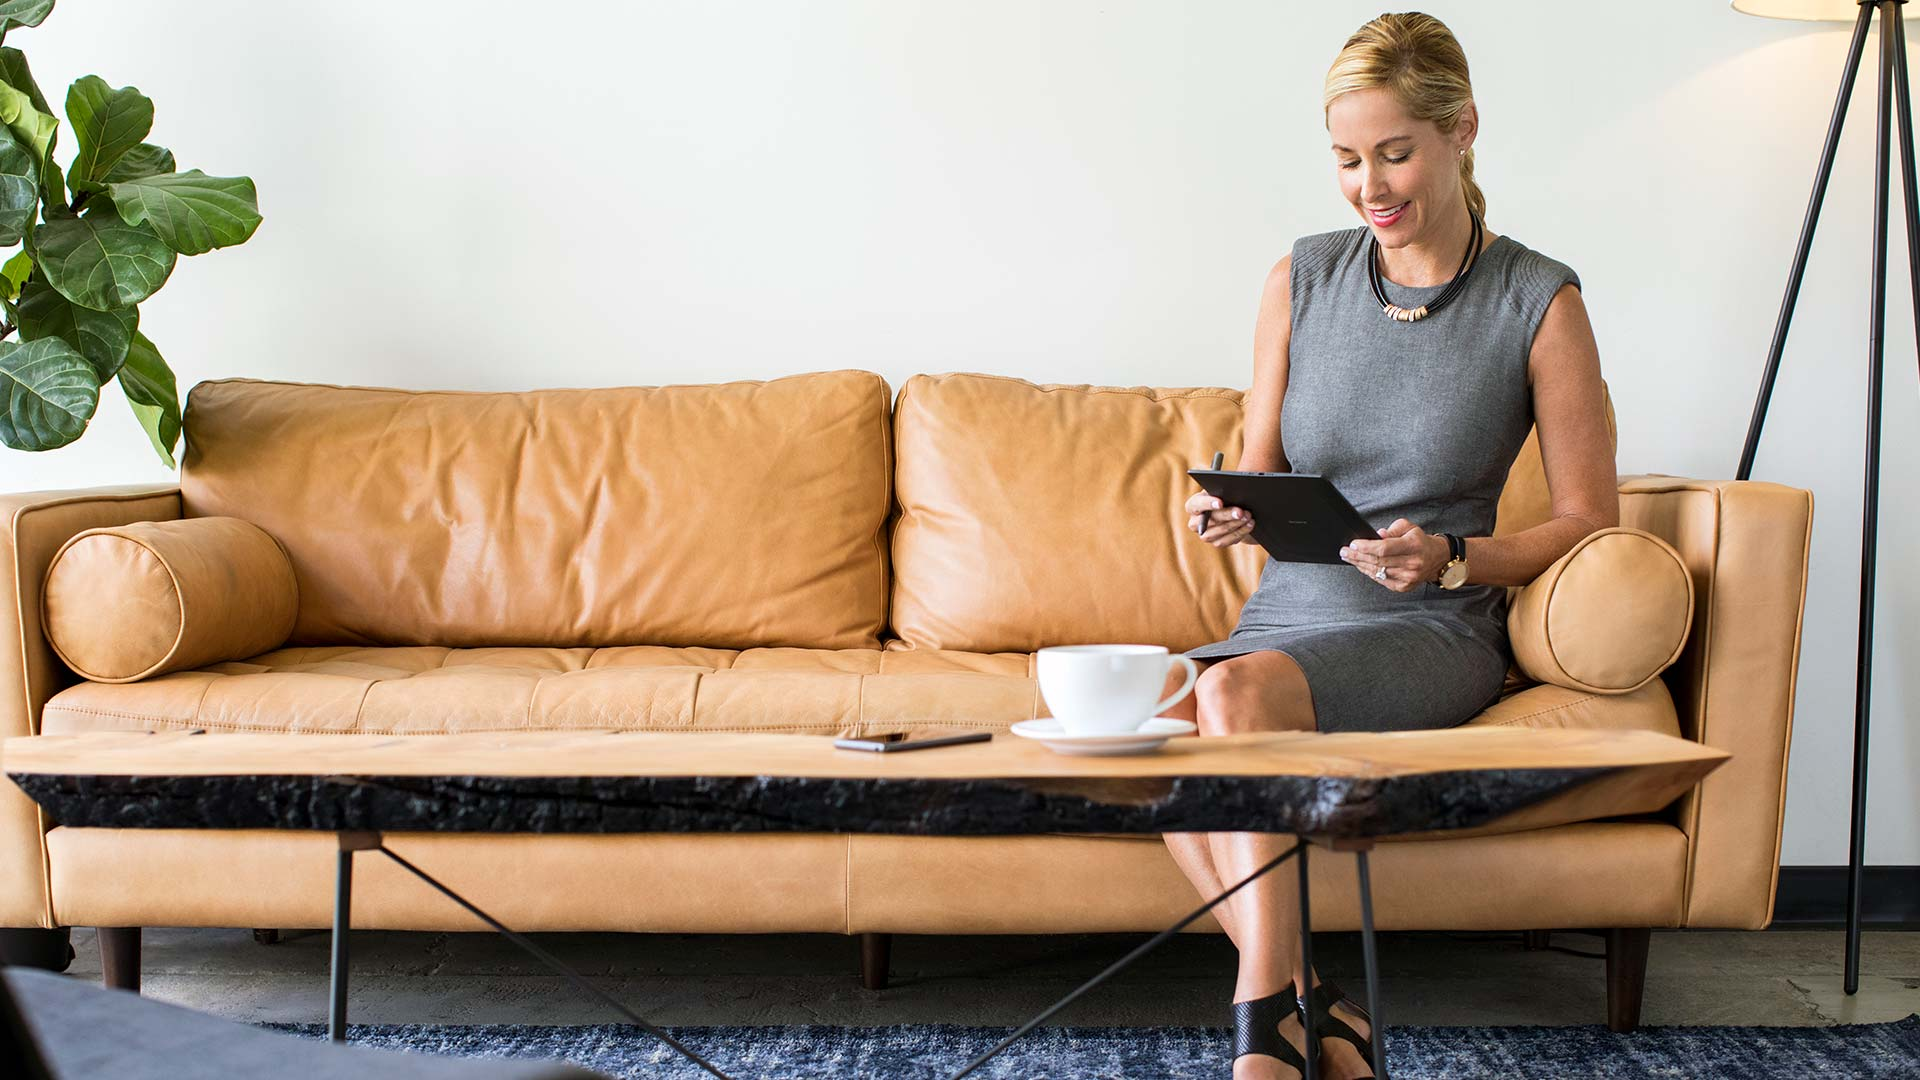 sony-digital-paper-photoshoot-woman-on-couch-front.jpg